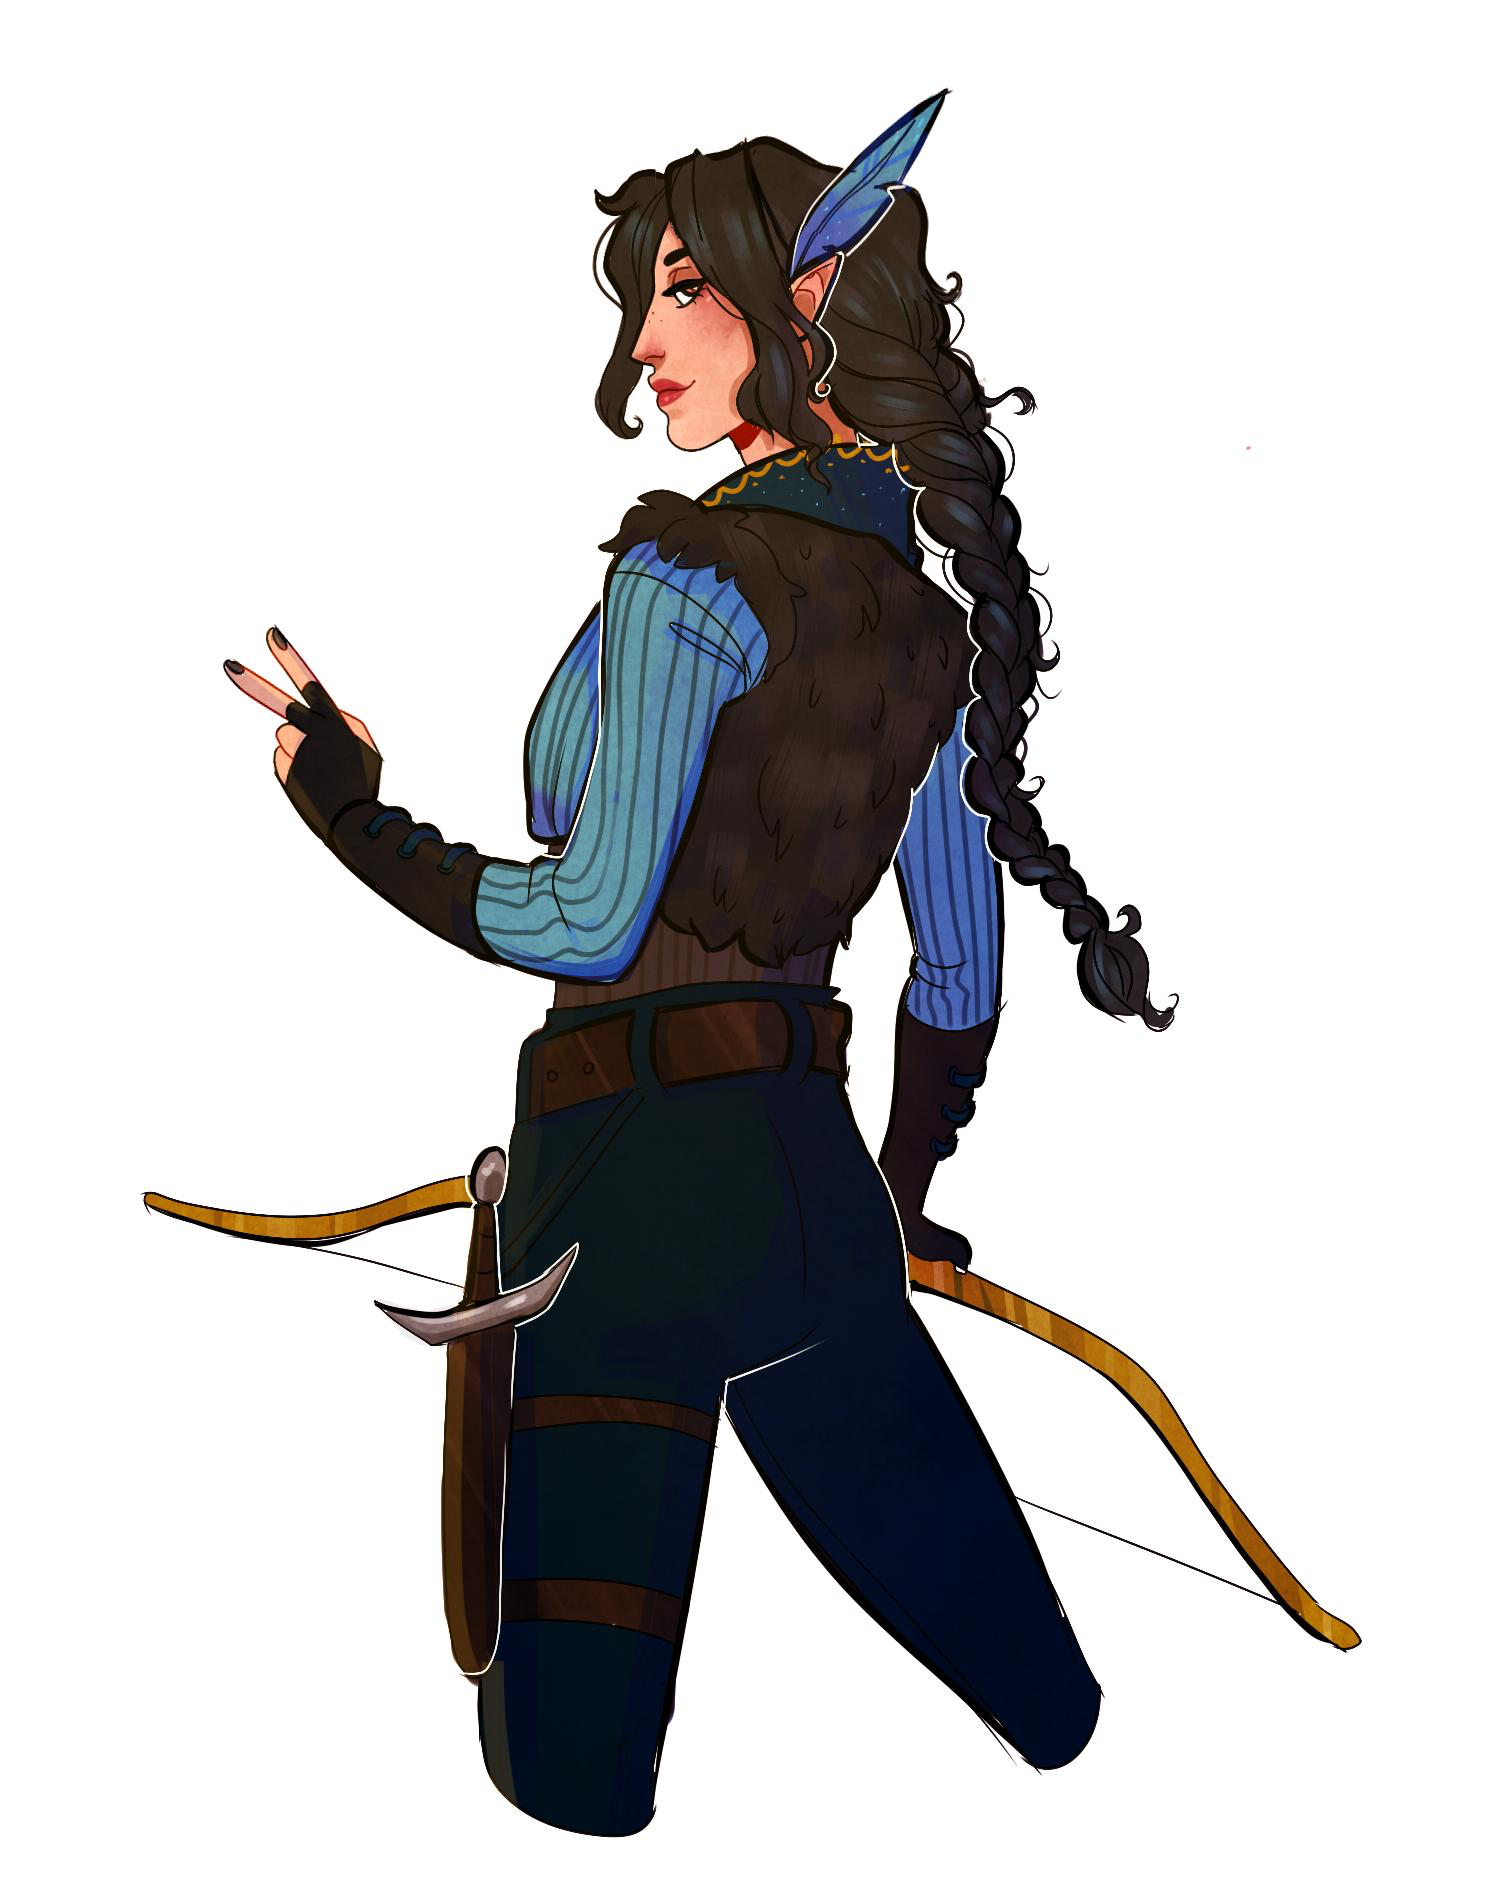 Pin On Critical Role Vex, along with her brother vax, was born in the humble village of byroden due to the union of a human woman named elaina and an elven man named syldor vessar. pin on critical role